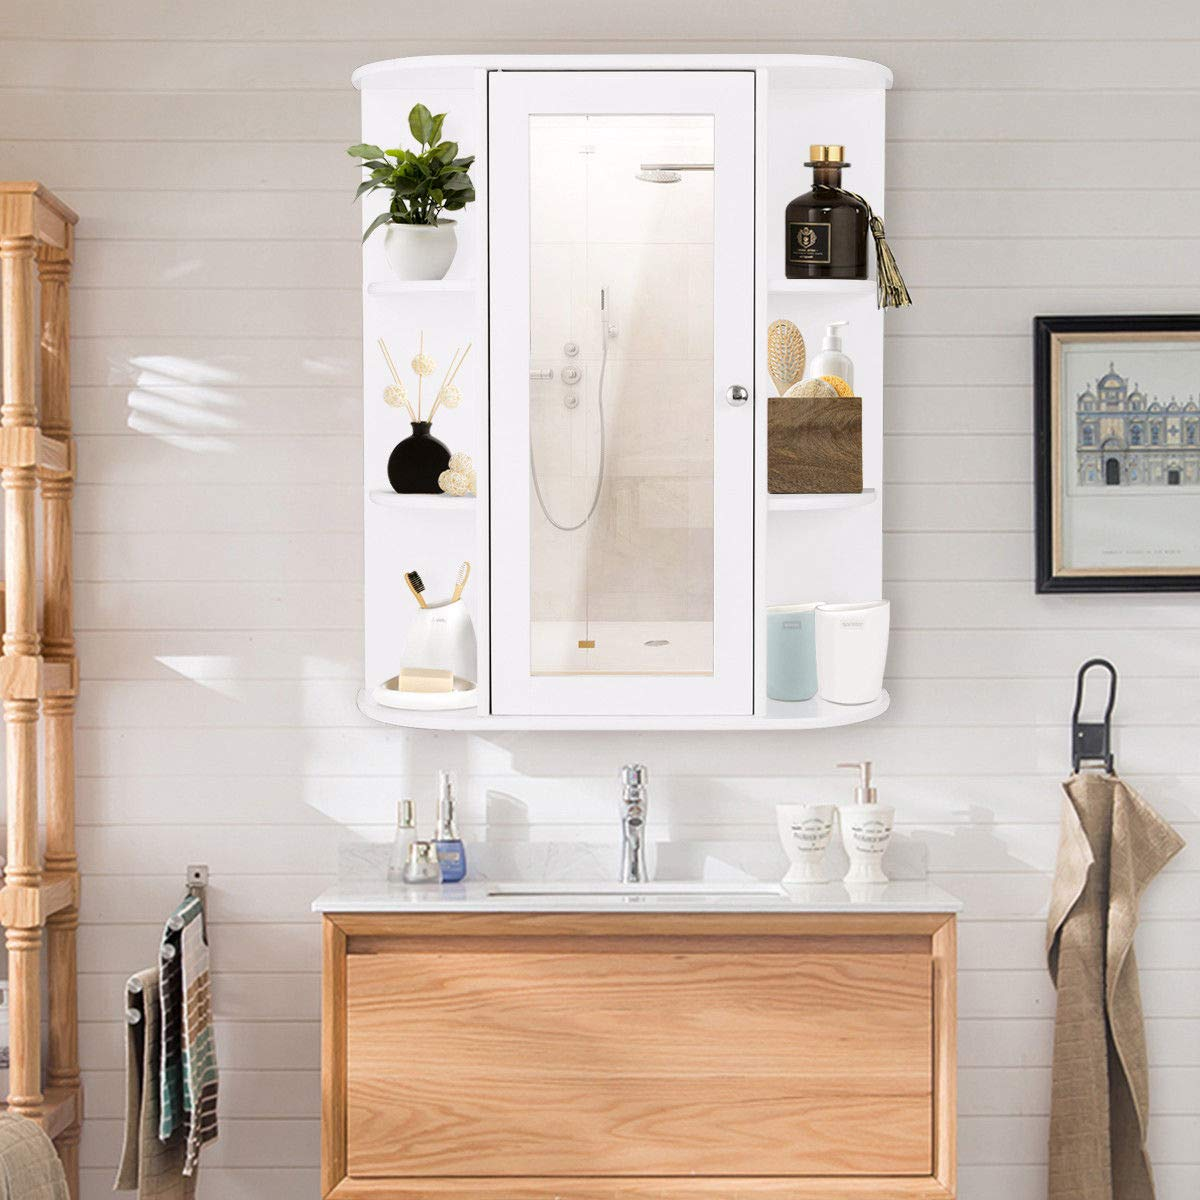 TANGKULA Bathroom Cabinet Single Door Wall Mount with Mirror Organizer Storage Cabinet(2 Tier Inner Shelves) by TANGKULA (Image #2)